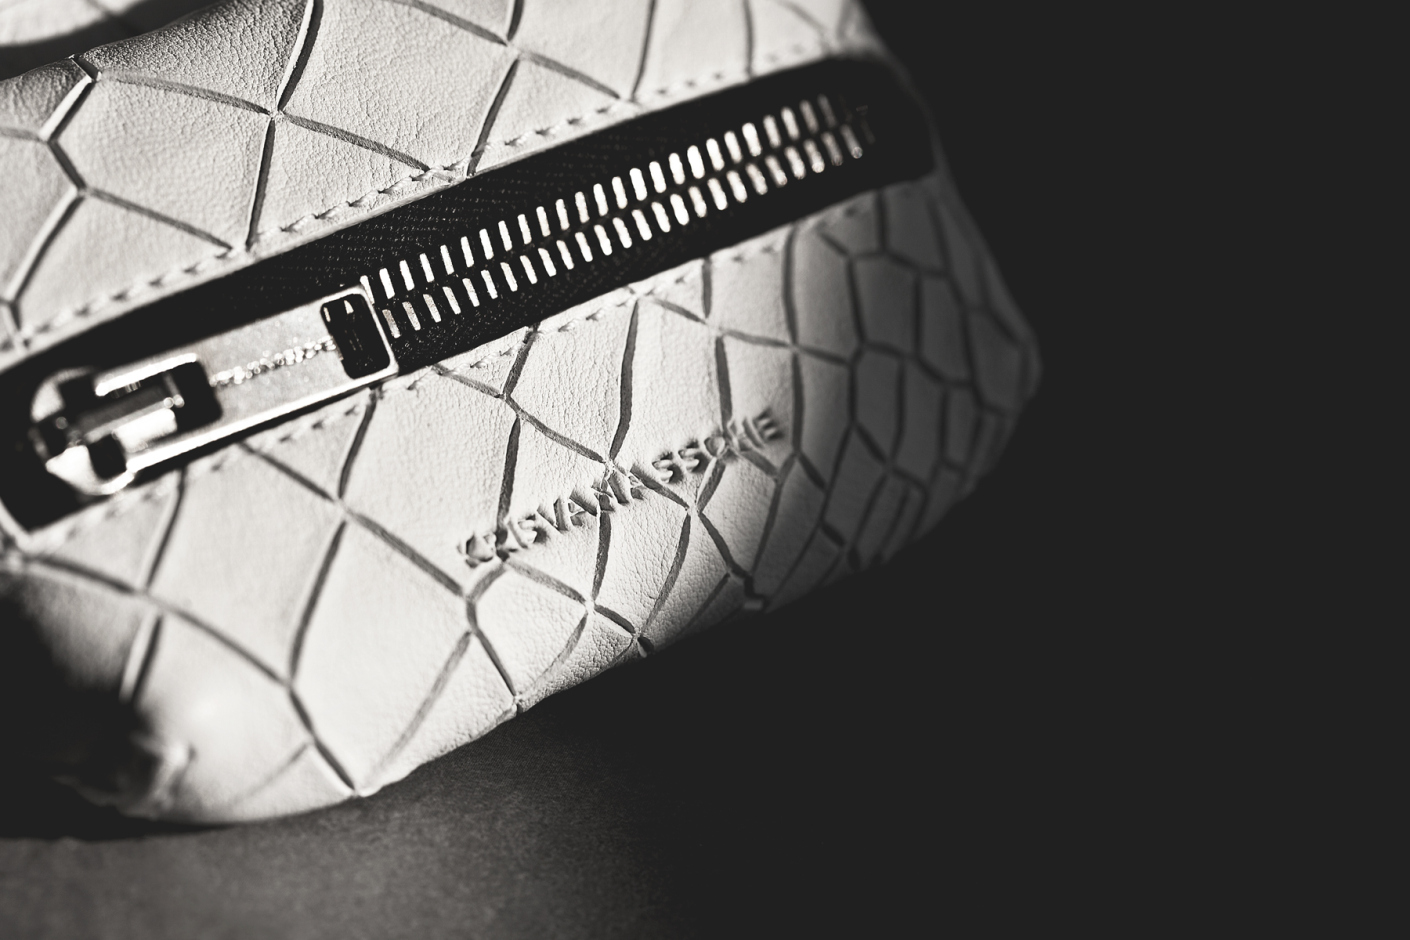 krisvanassache 2014 spring summer croc skin accessories 3 Krisvanassche Spring/Summer 2014 Croc Skin Accessories Collection